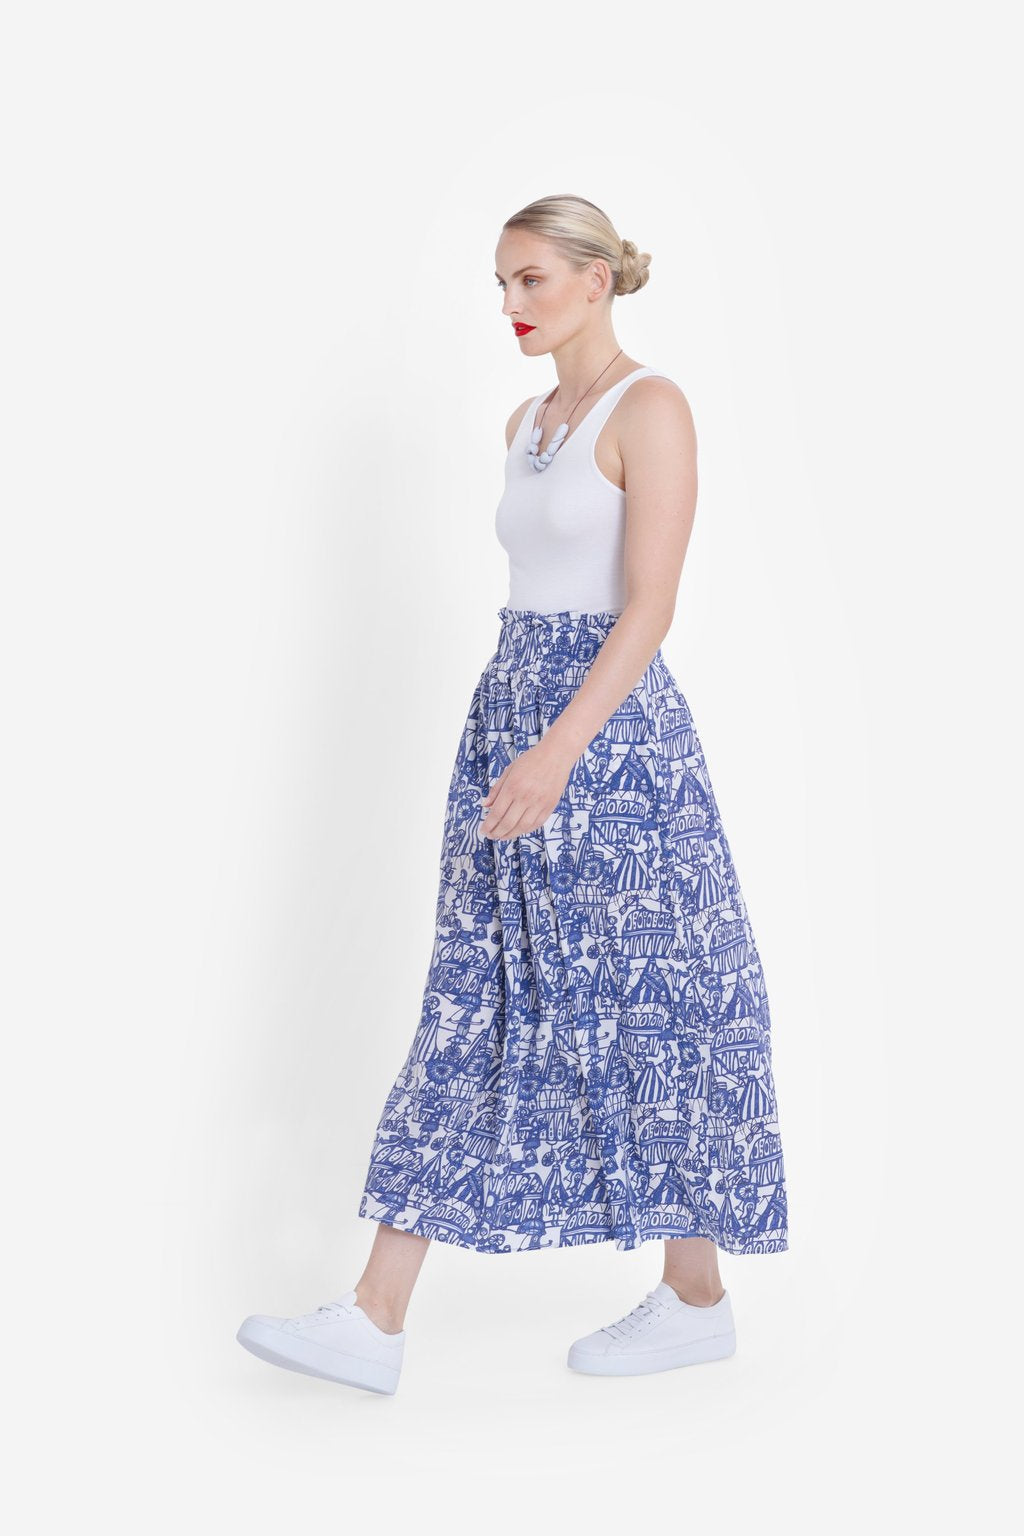 Elk Cirkus Skirt - Blue/White Print